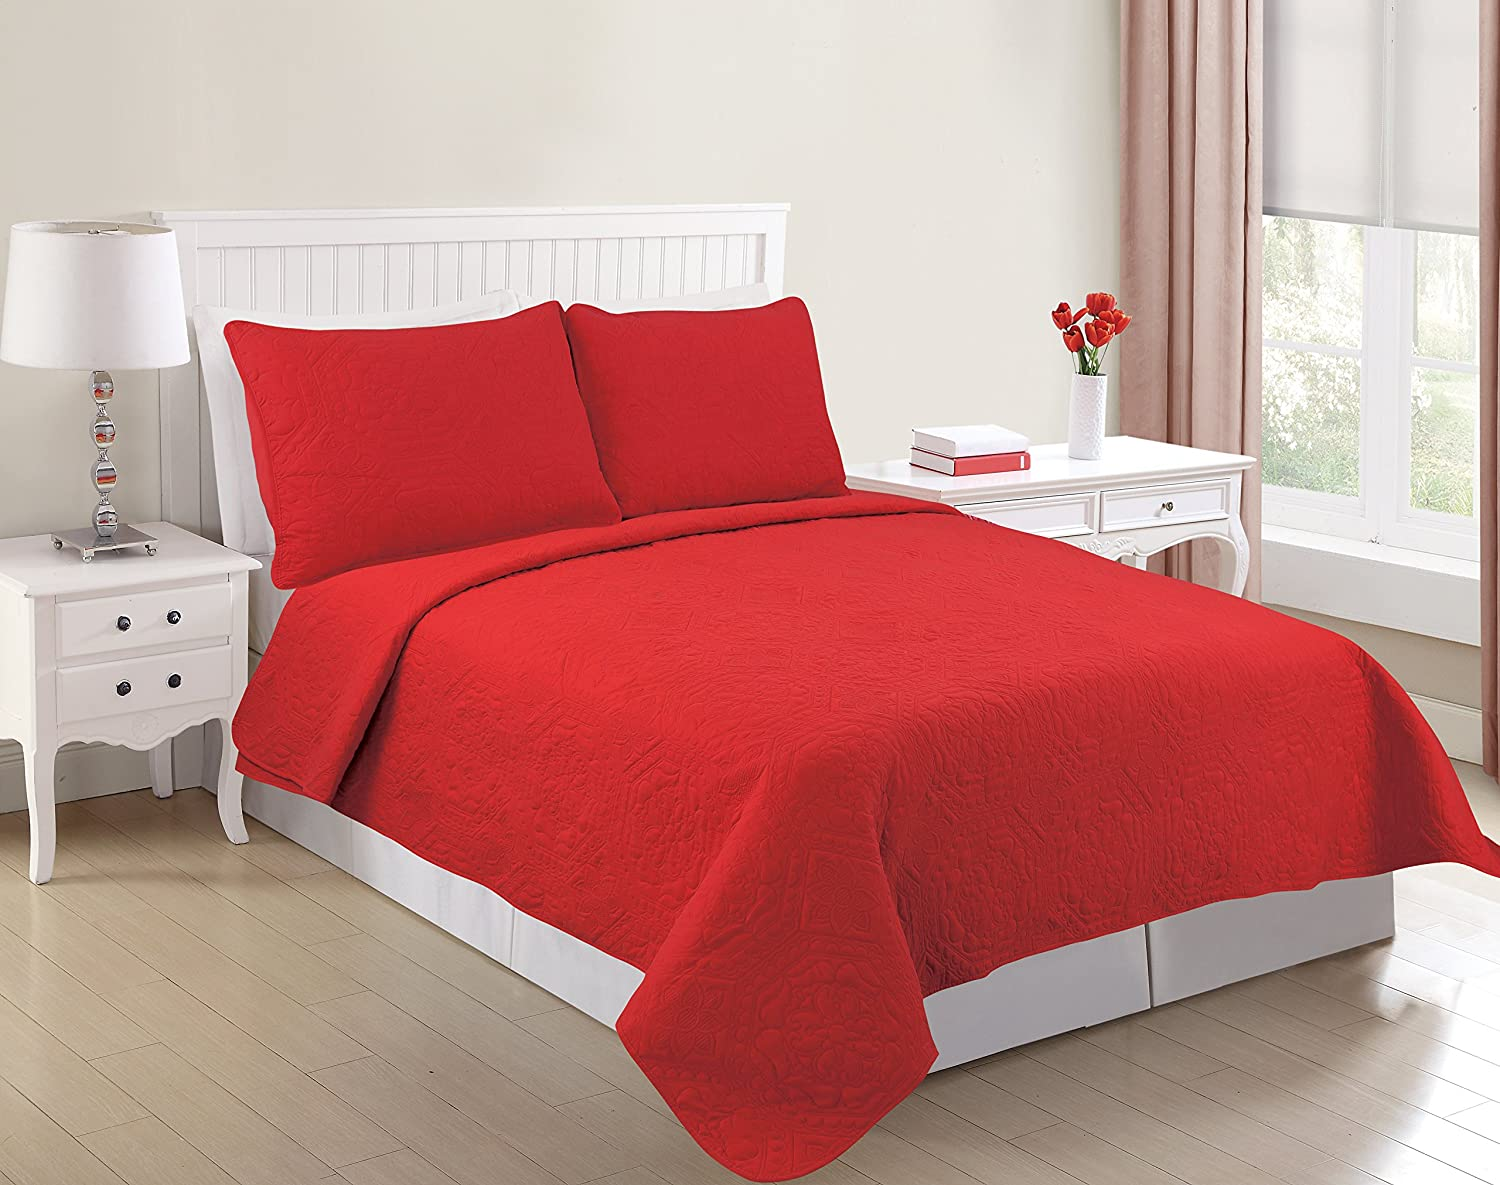 All American Collection New 3 Piece Solid Embroidered Bedspread  Coverlet with Hexagon Design